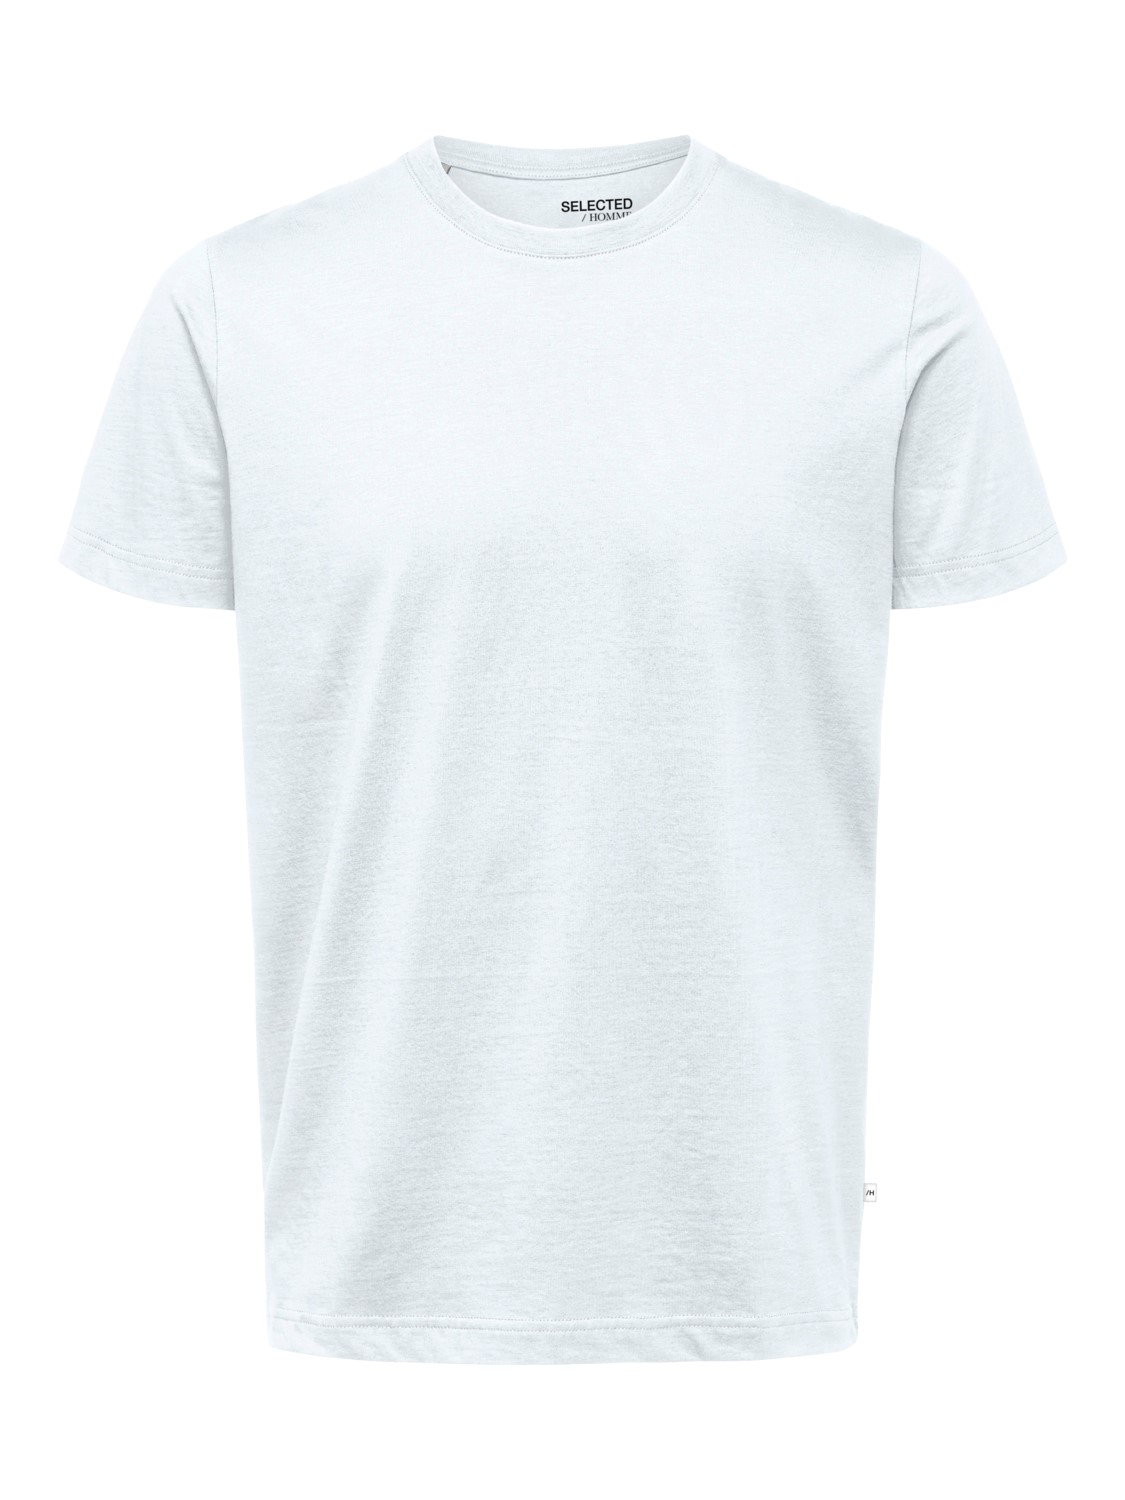 Selected - T-shirt o-neck white | Gate36 Hobro